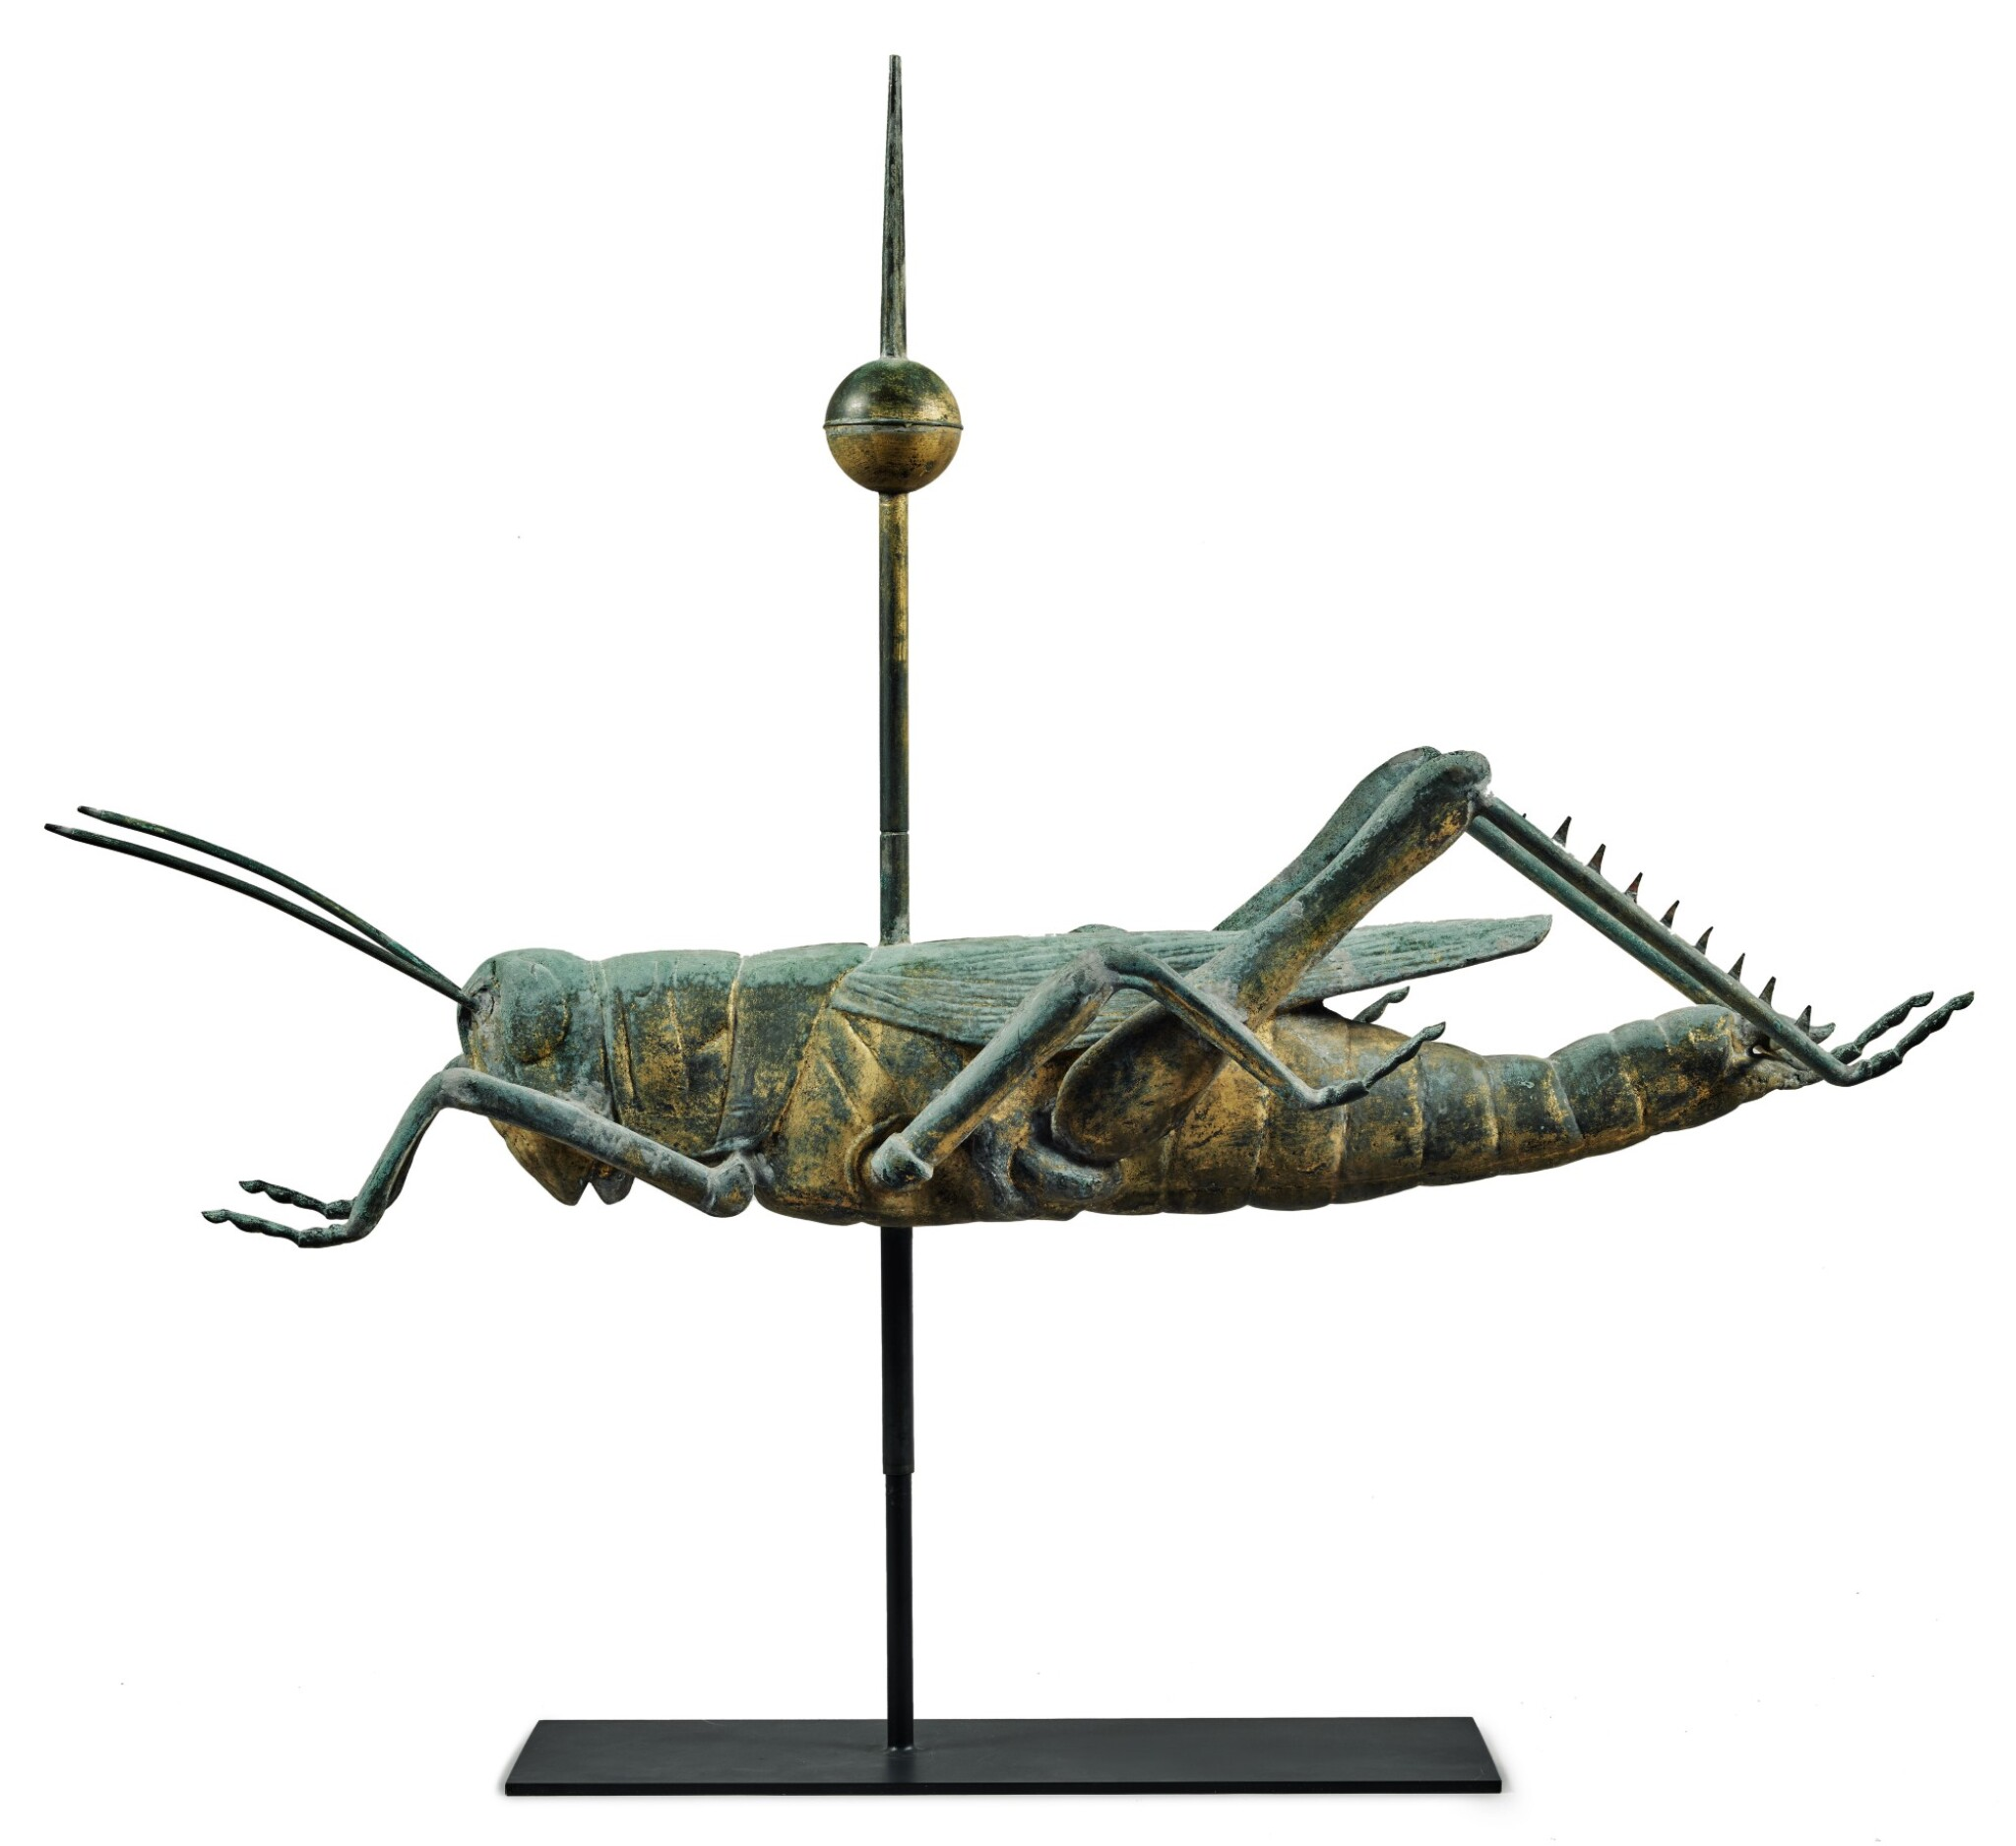 EXCEPTIONAL HOLLOW MOLDED AND GILT COPPER GRASSHOPPER WEATHERVANE, ATTRIBUTED TO L.W. CUSHING & SONS WALTHAM, MASSACHUSETTS, CIRCA 1883